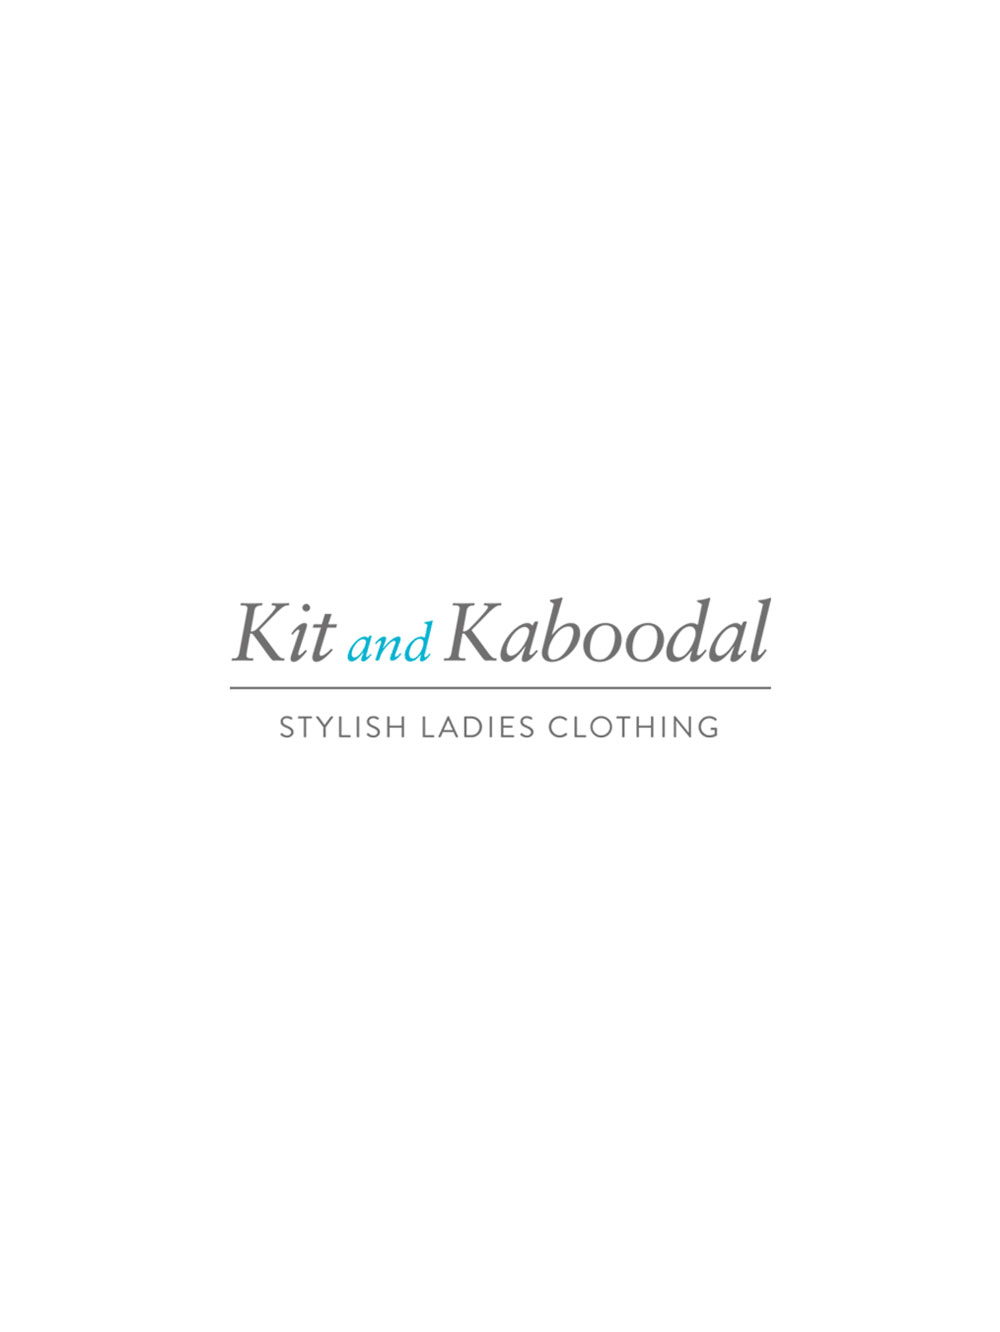 Kit and Kaboodal Chervil Necklace Silver